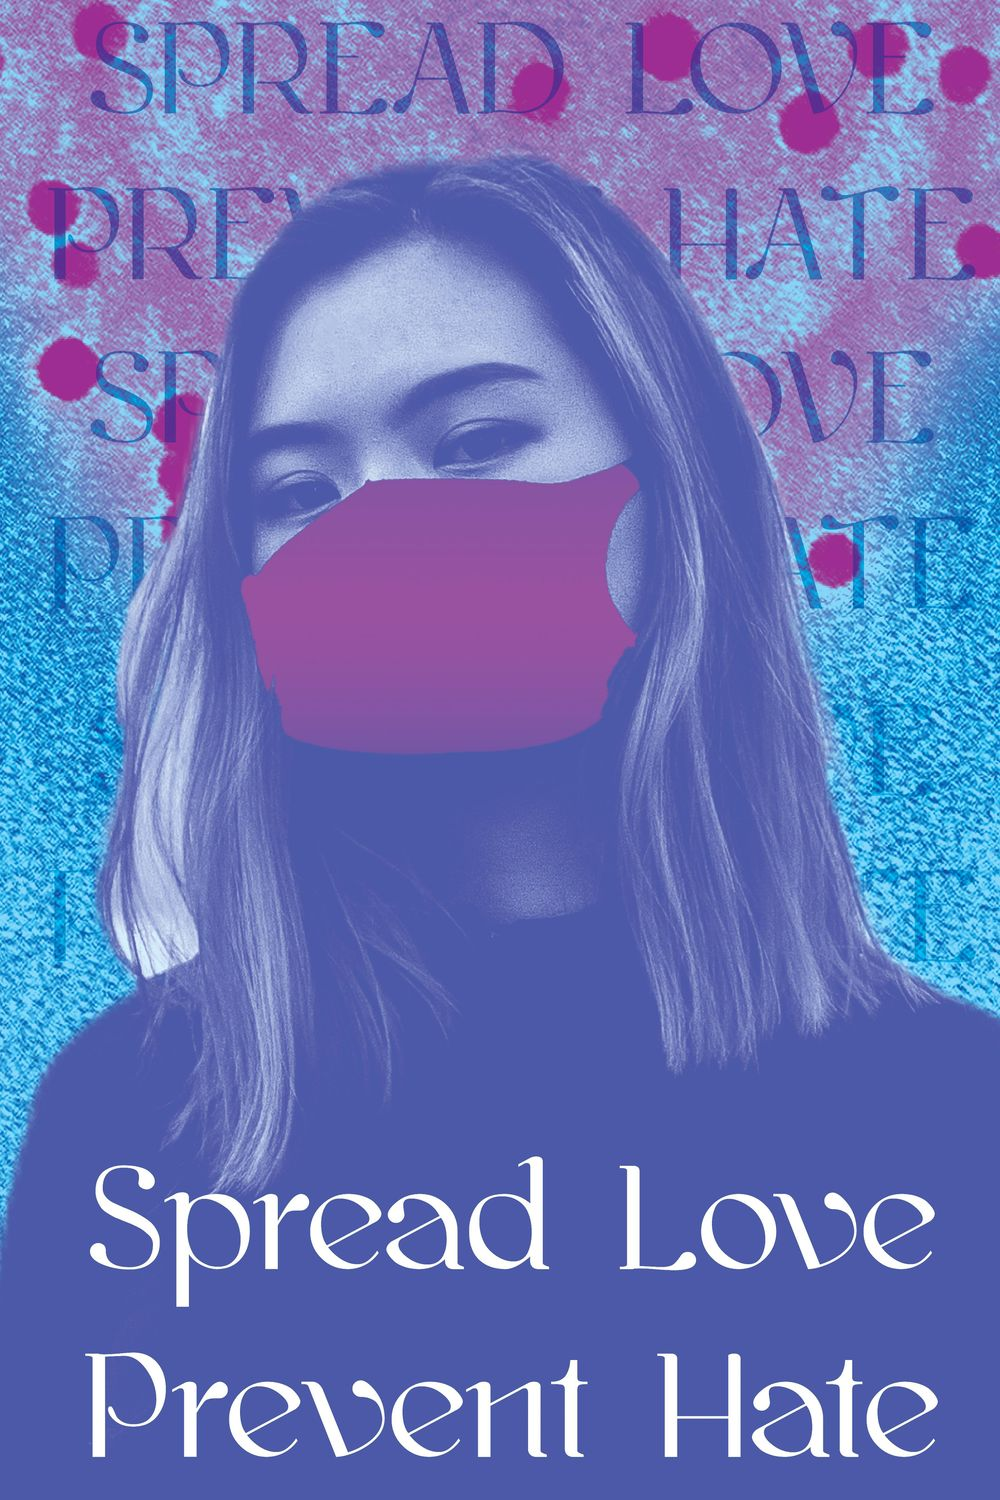 Spread Love Prevent Virus Posters - image 2 - student project